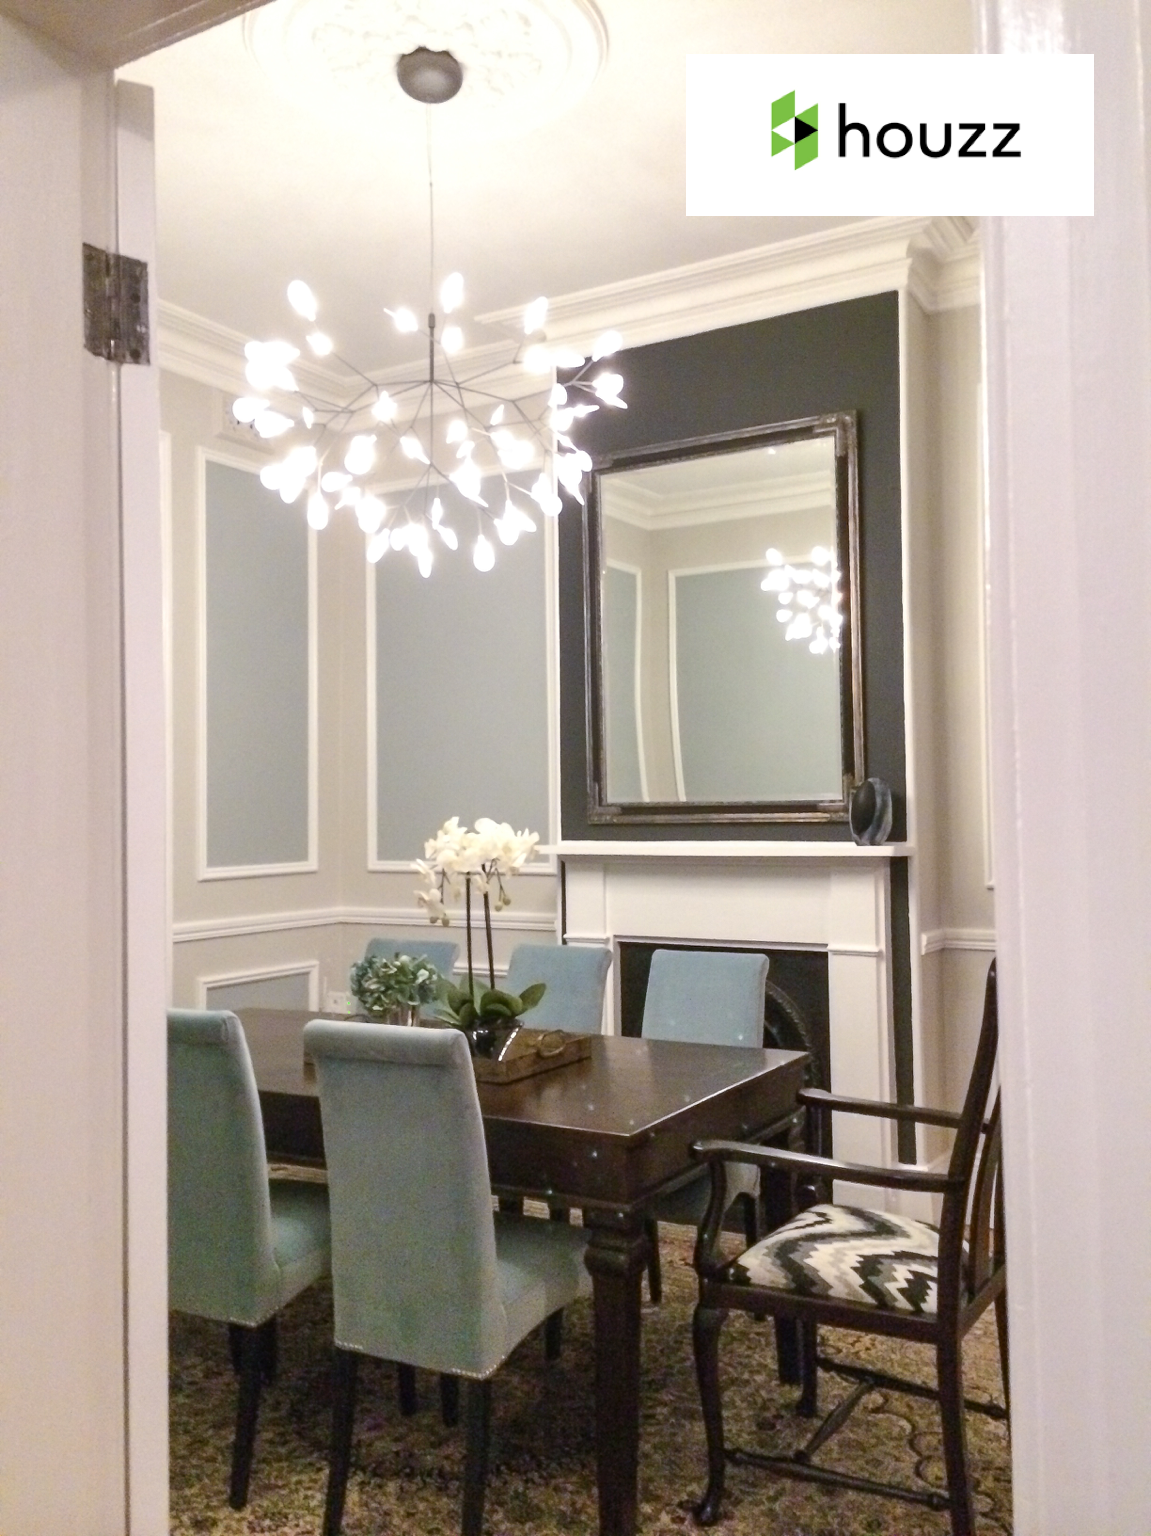 HOUZZ  - December 2015  Pushing the Envelope: 19 Ways to Work a Room